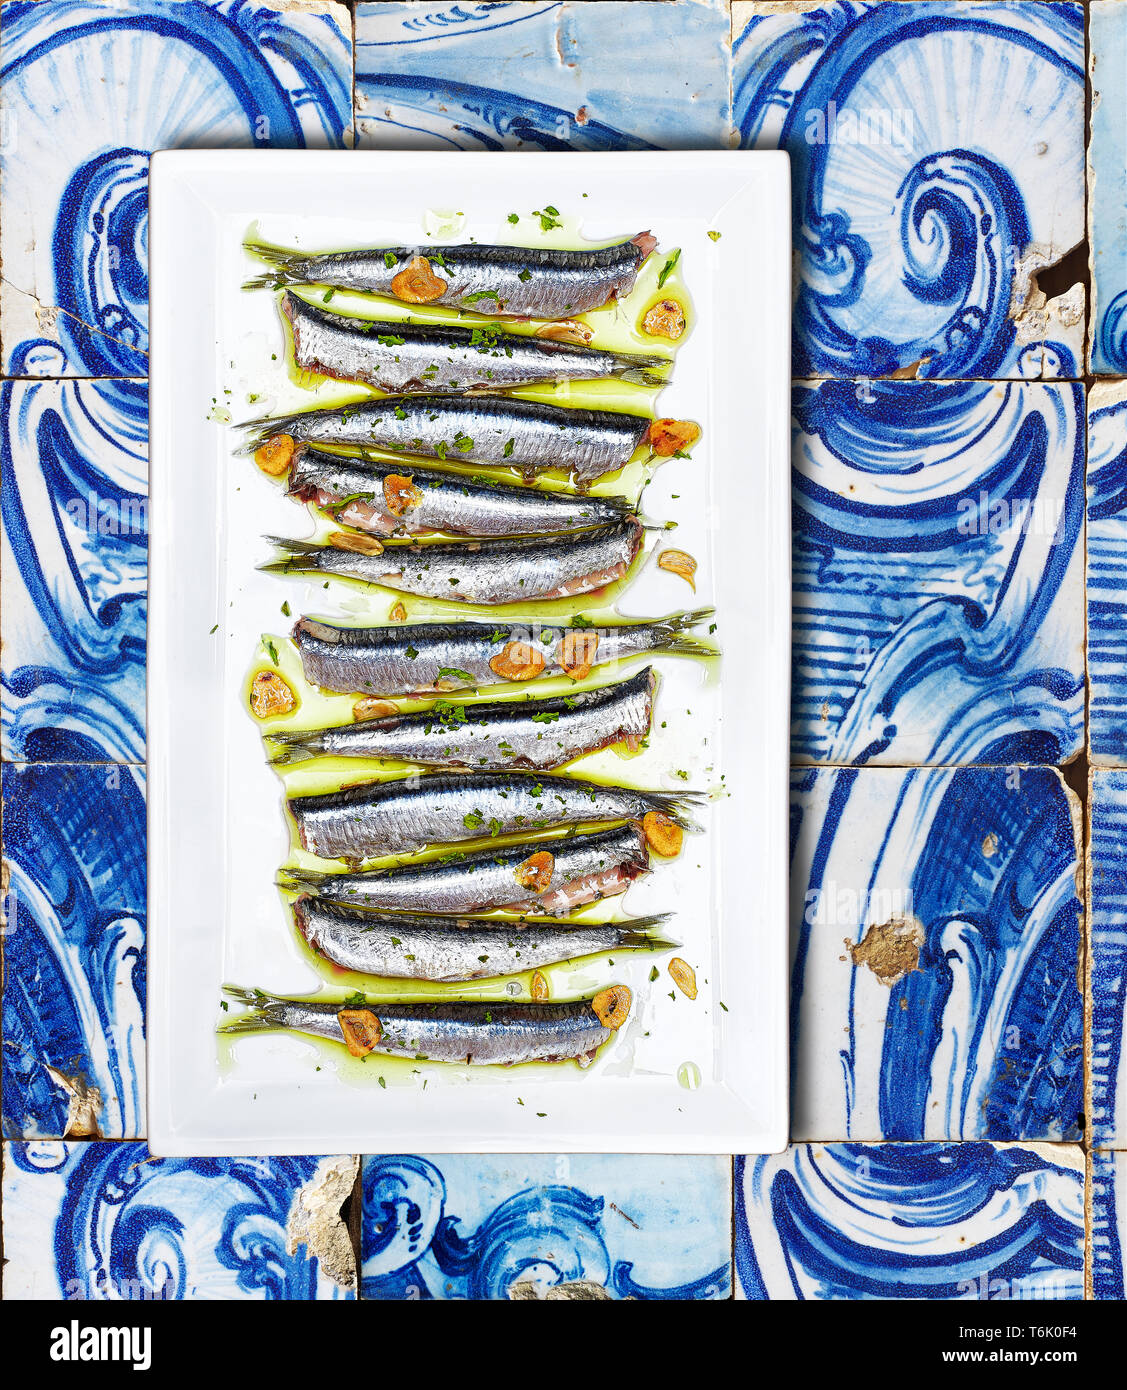 Anchovies cooked Basque Country style on a white plate over a tiled background. - Stock Image